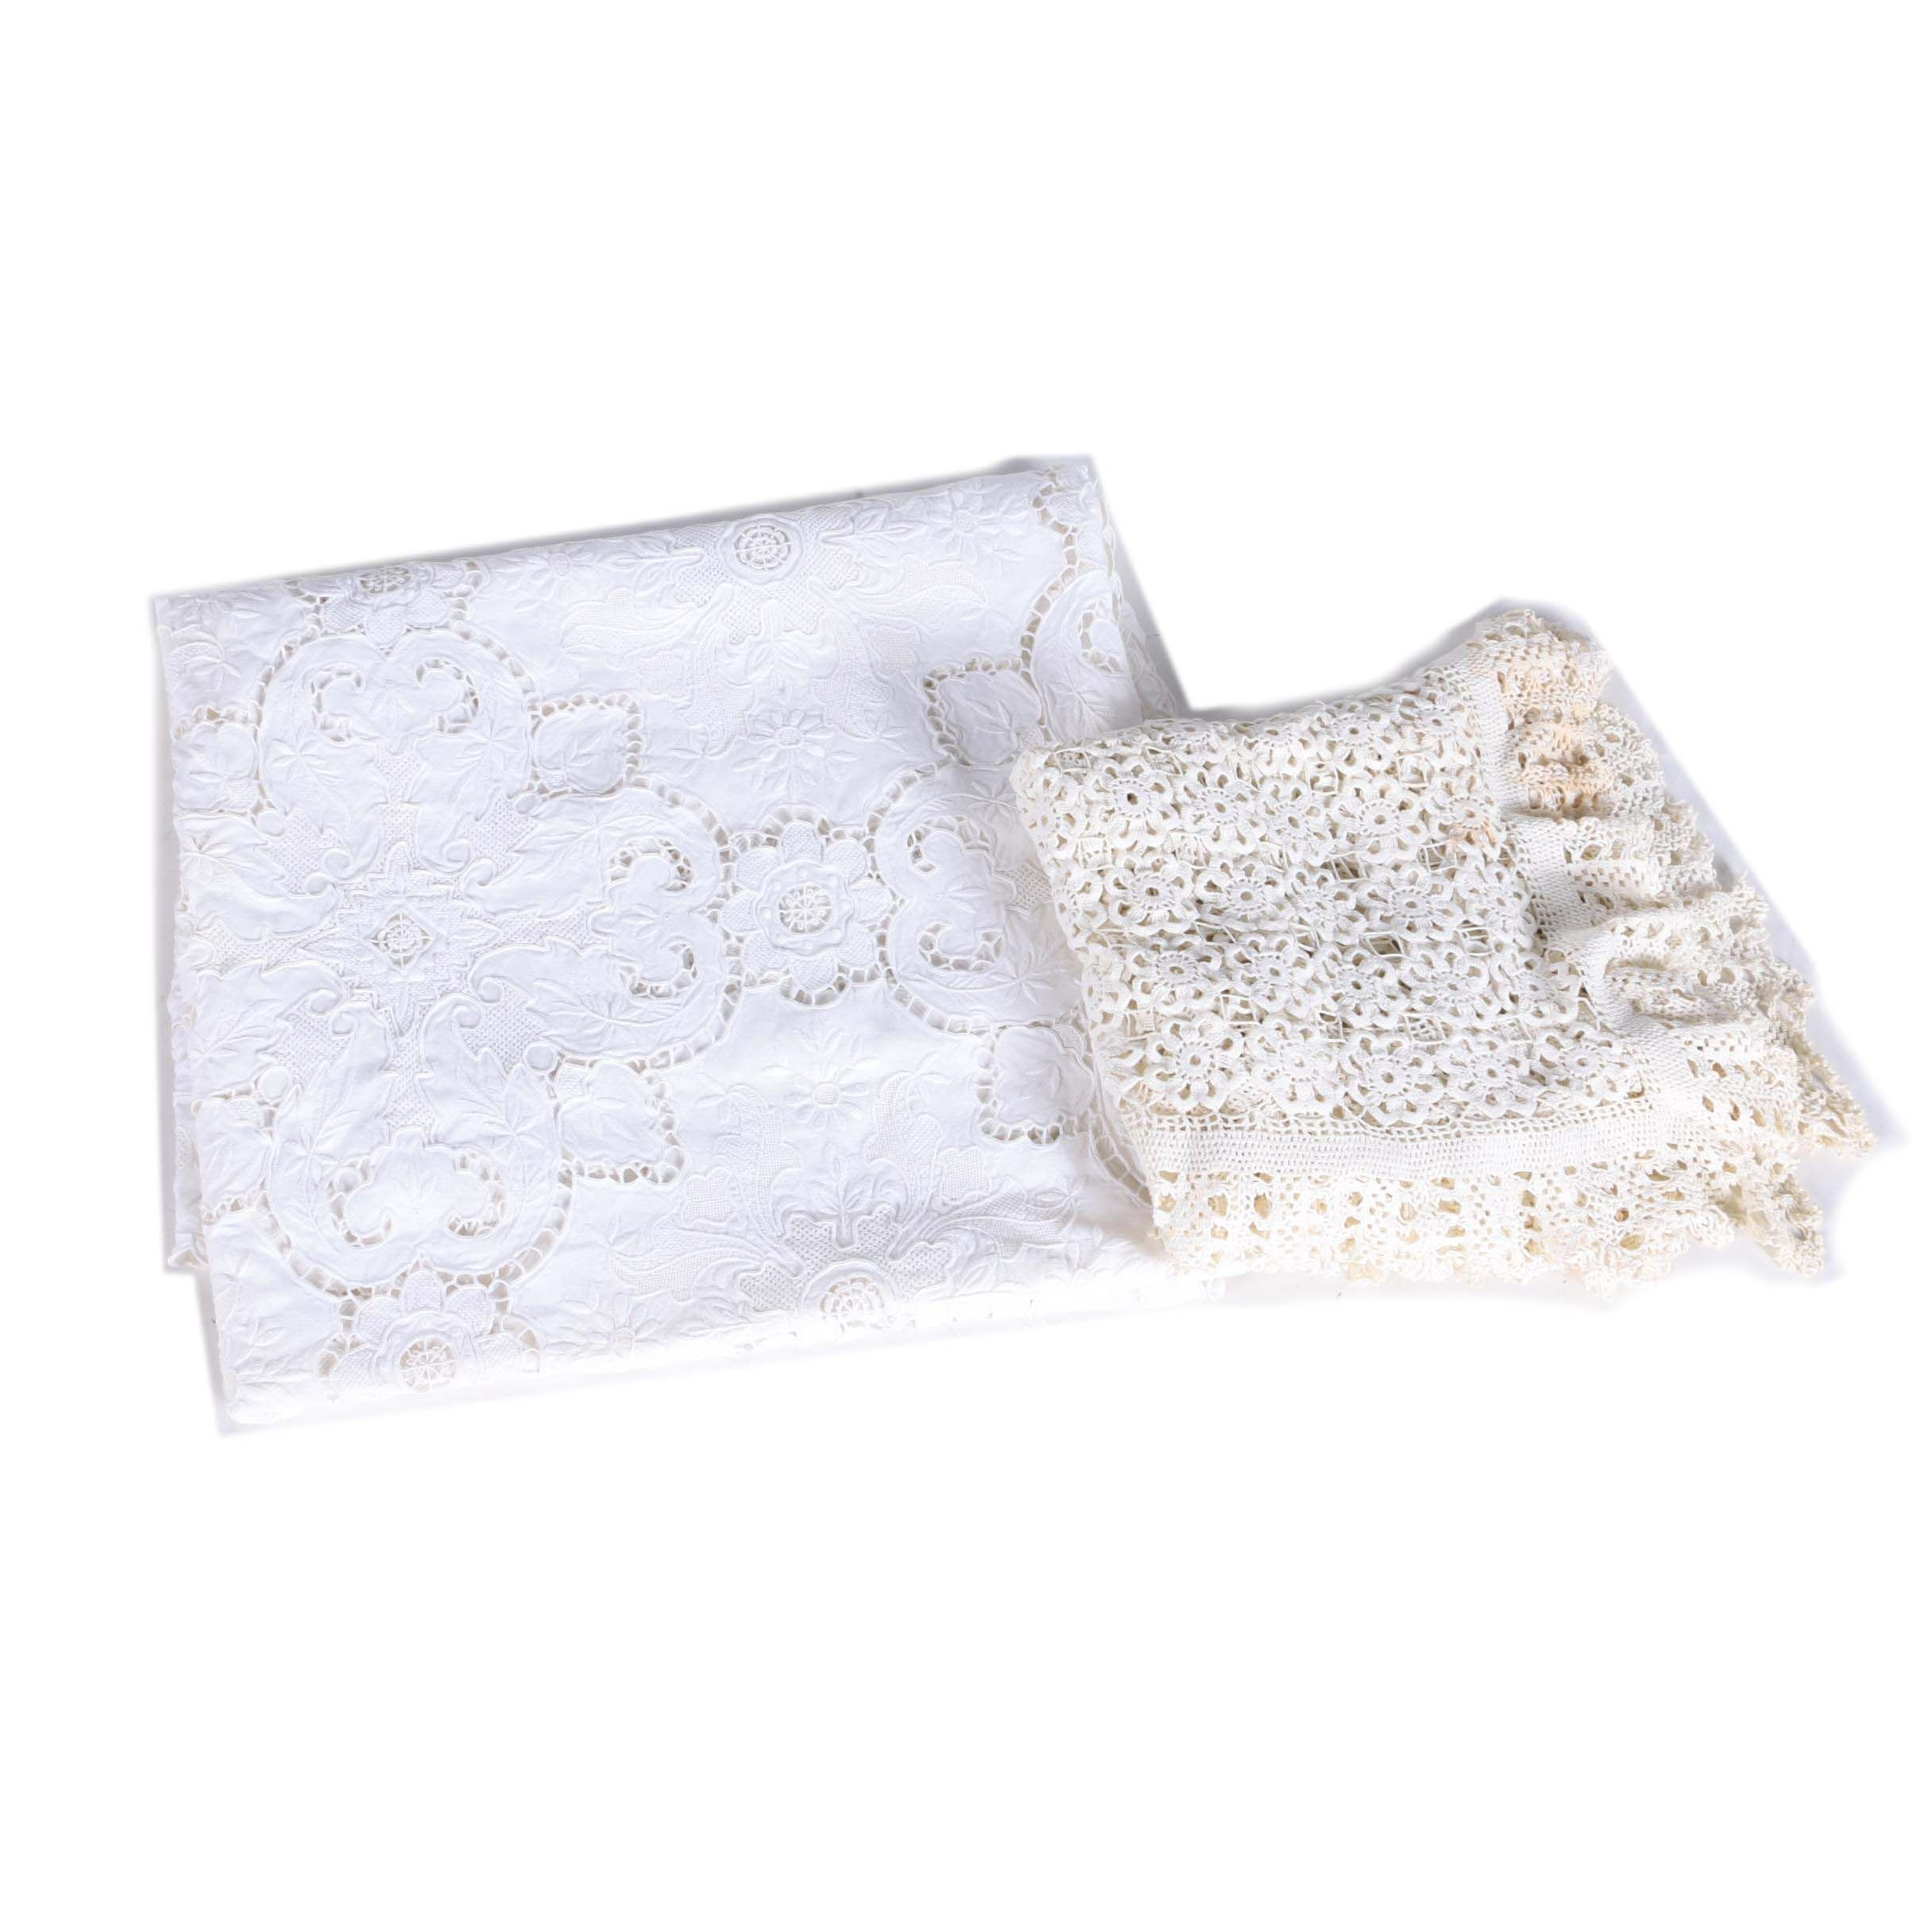 Embroidered Lace Tablecloth and Crocheted Blanket